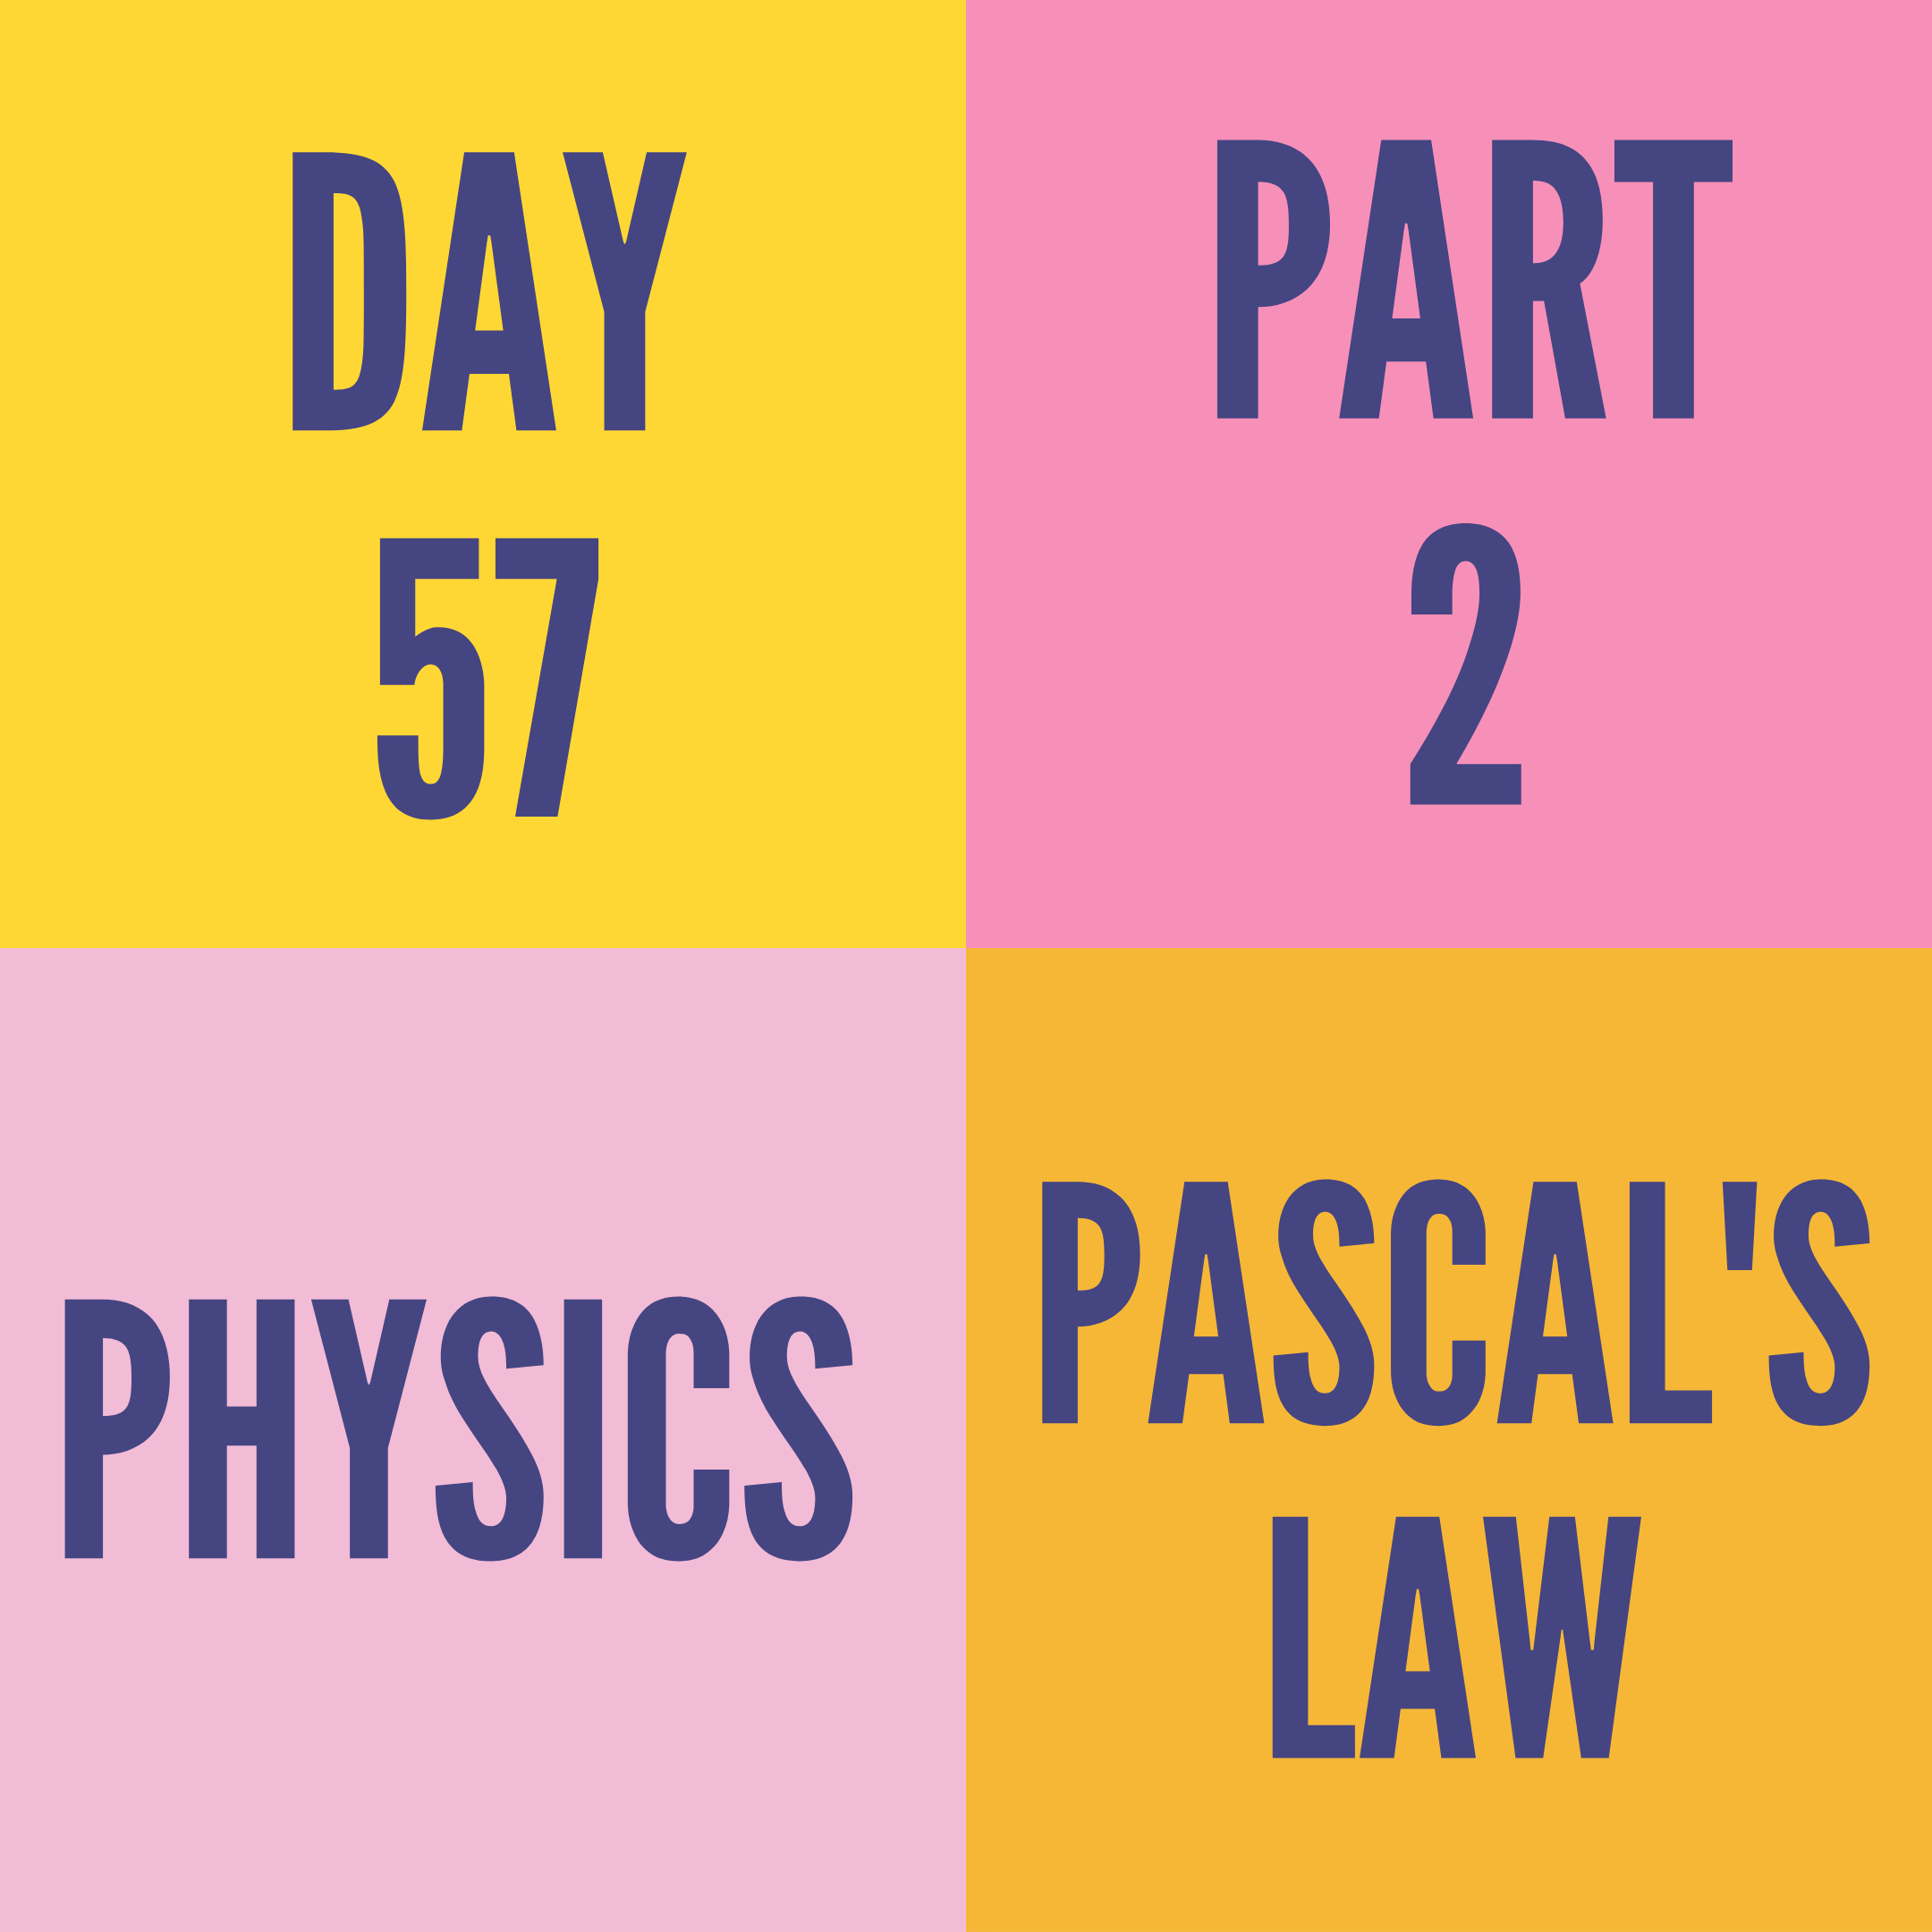 DAY-57 PART-2 PASCAL'S LAW